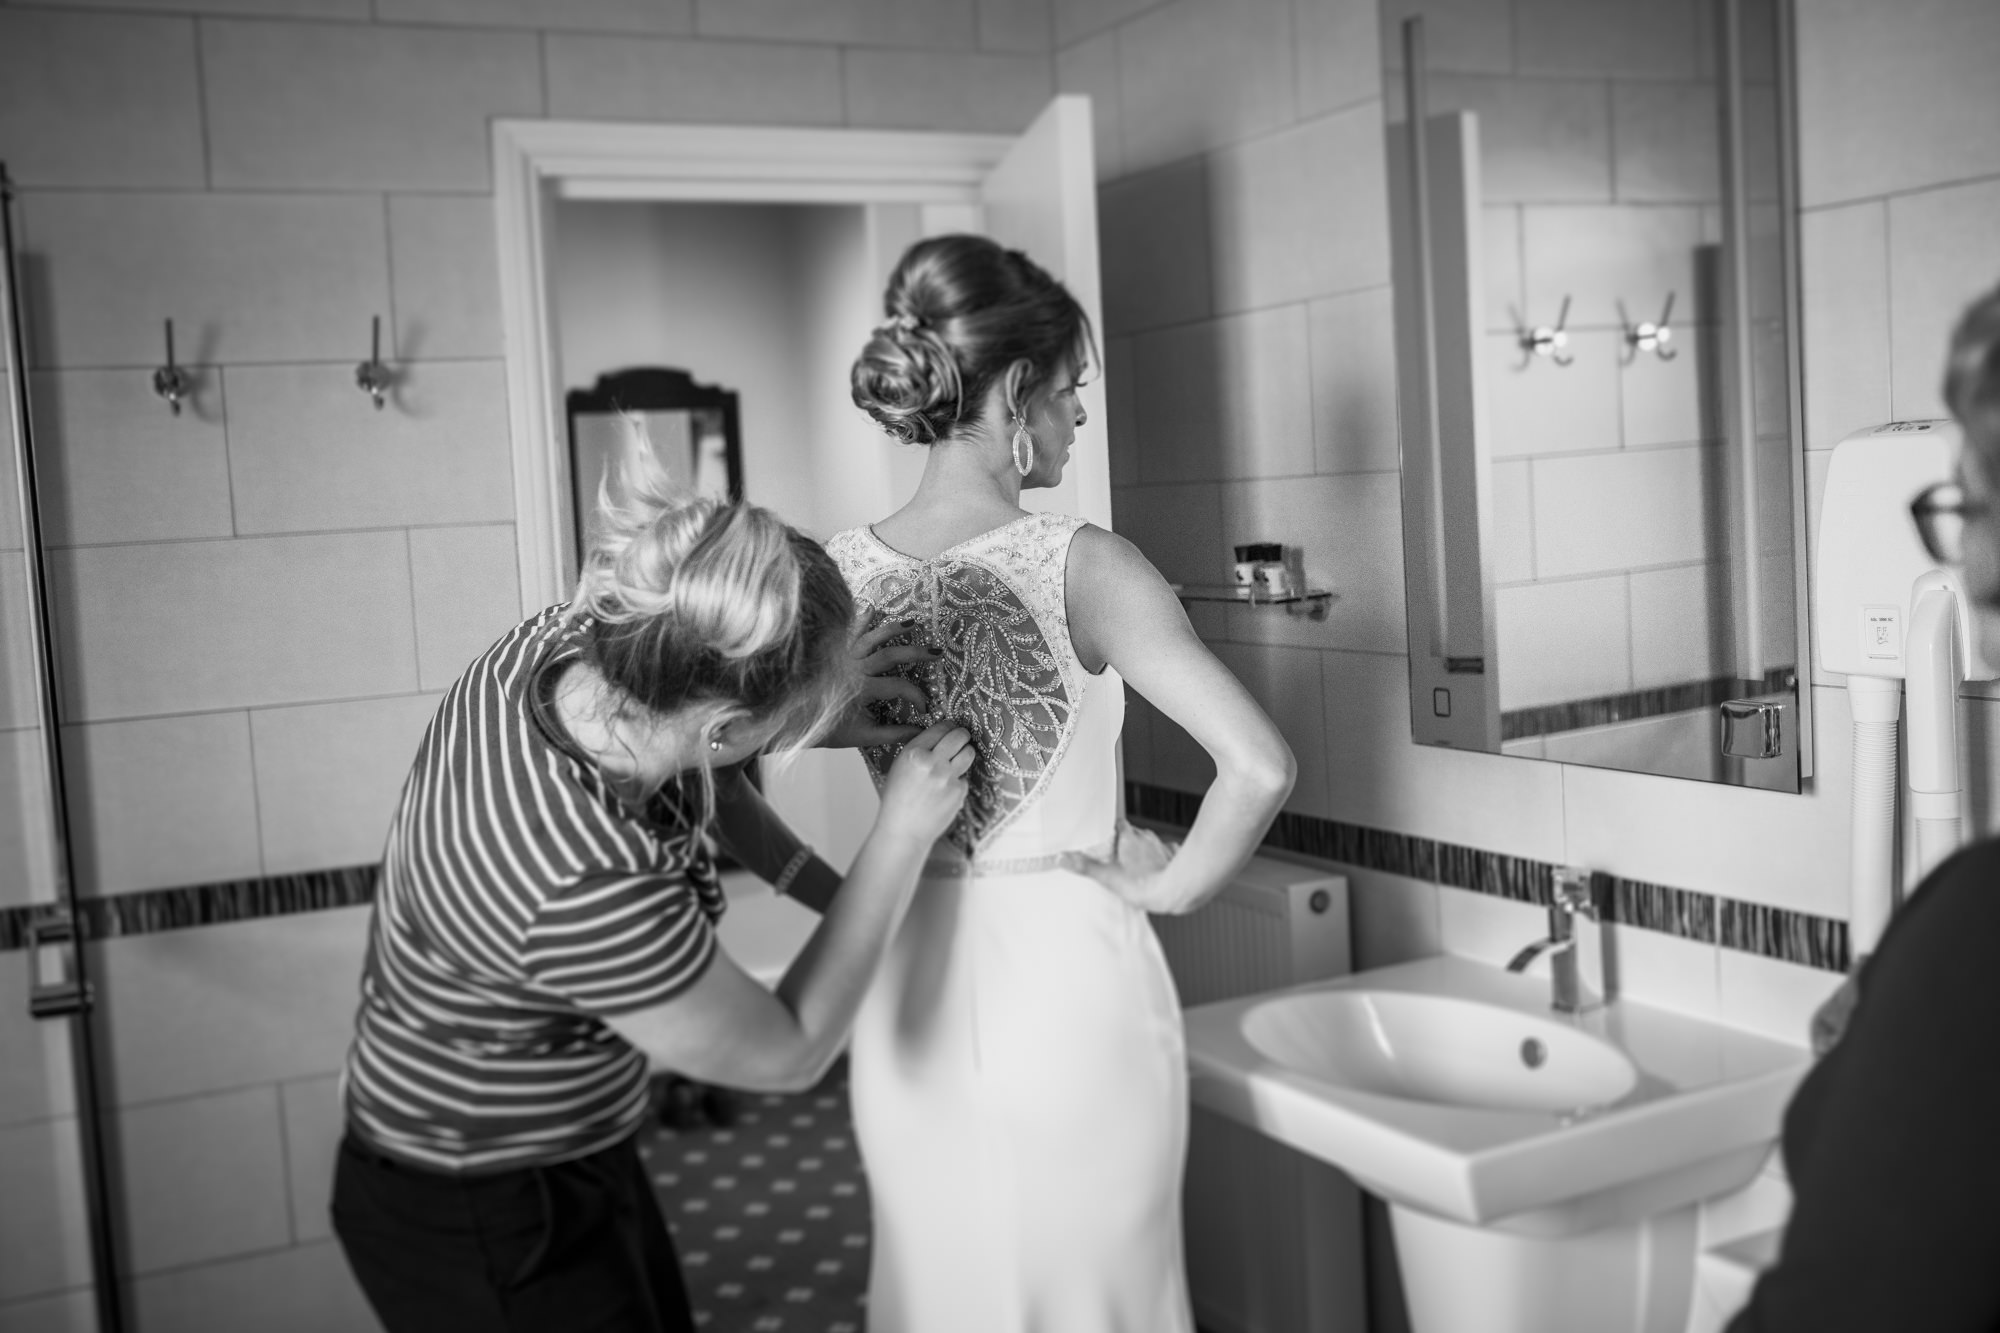 Bride Getting Ready Wedding Photography Worthing, Sussex